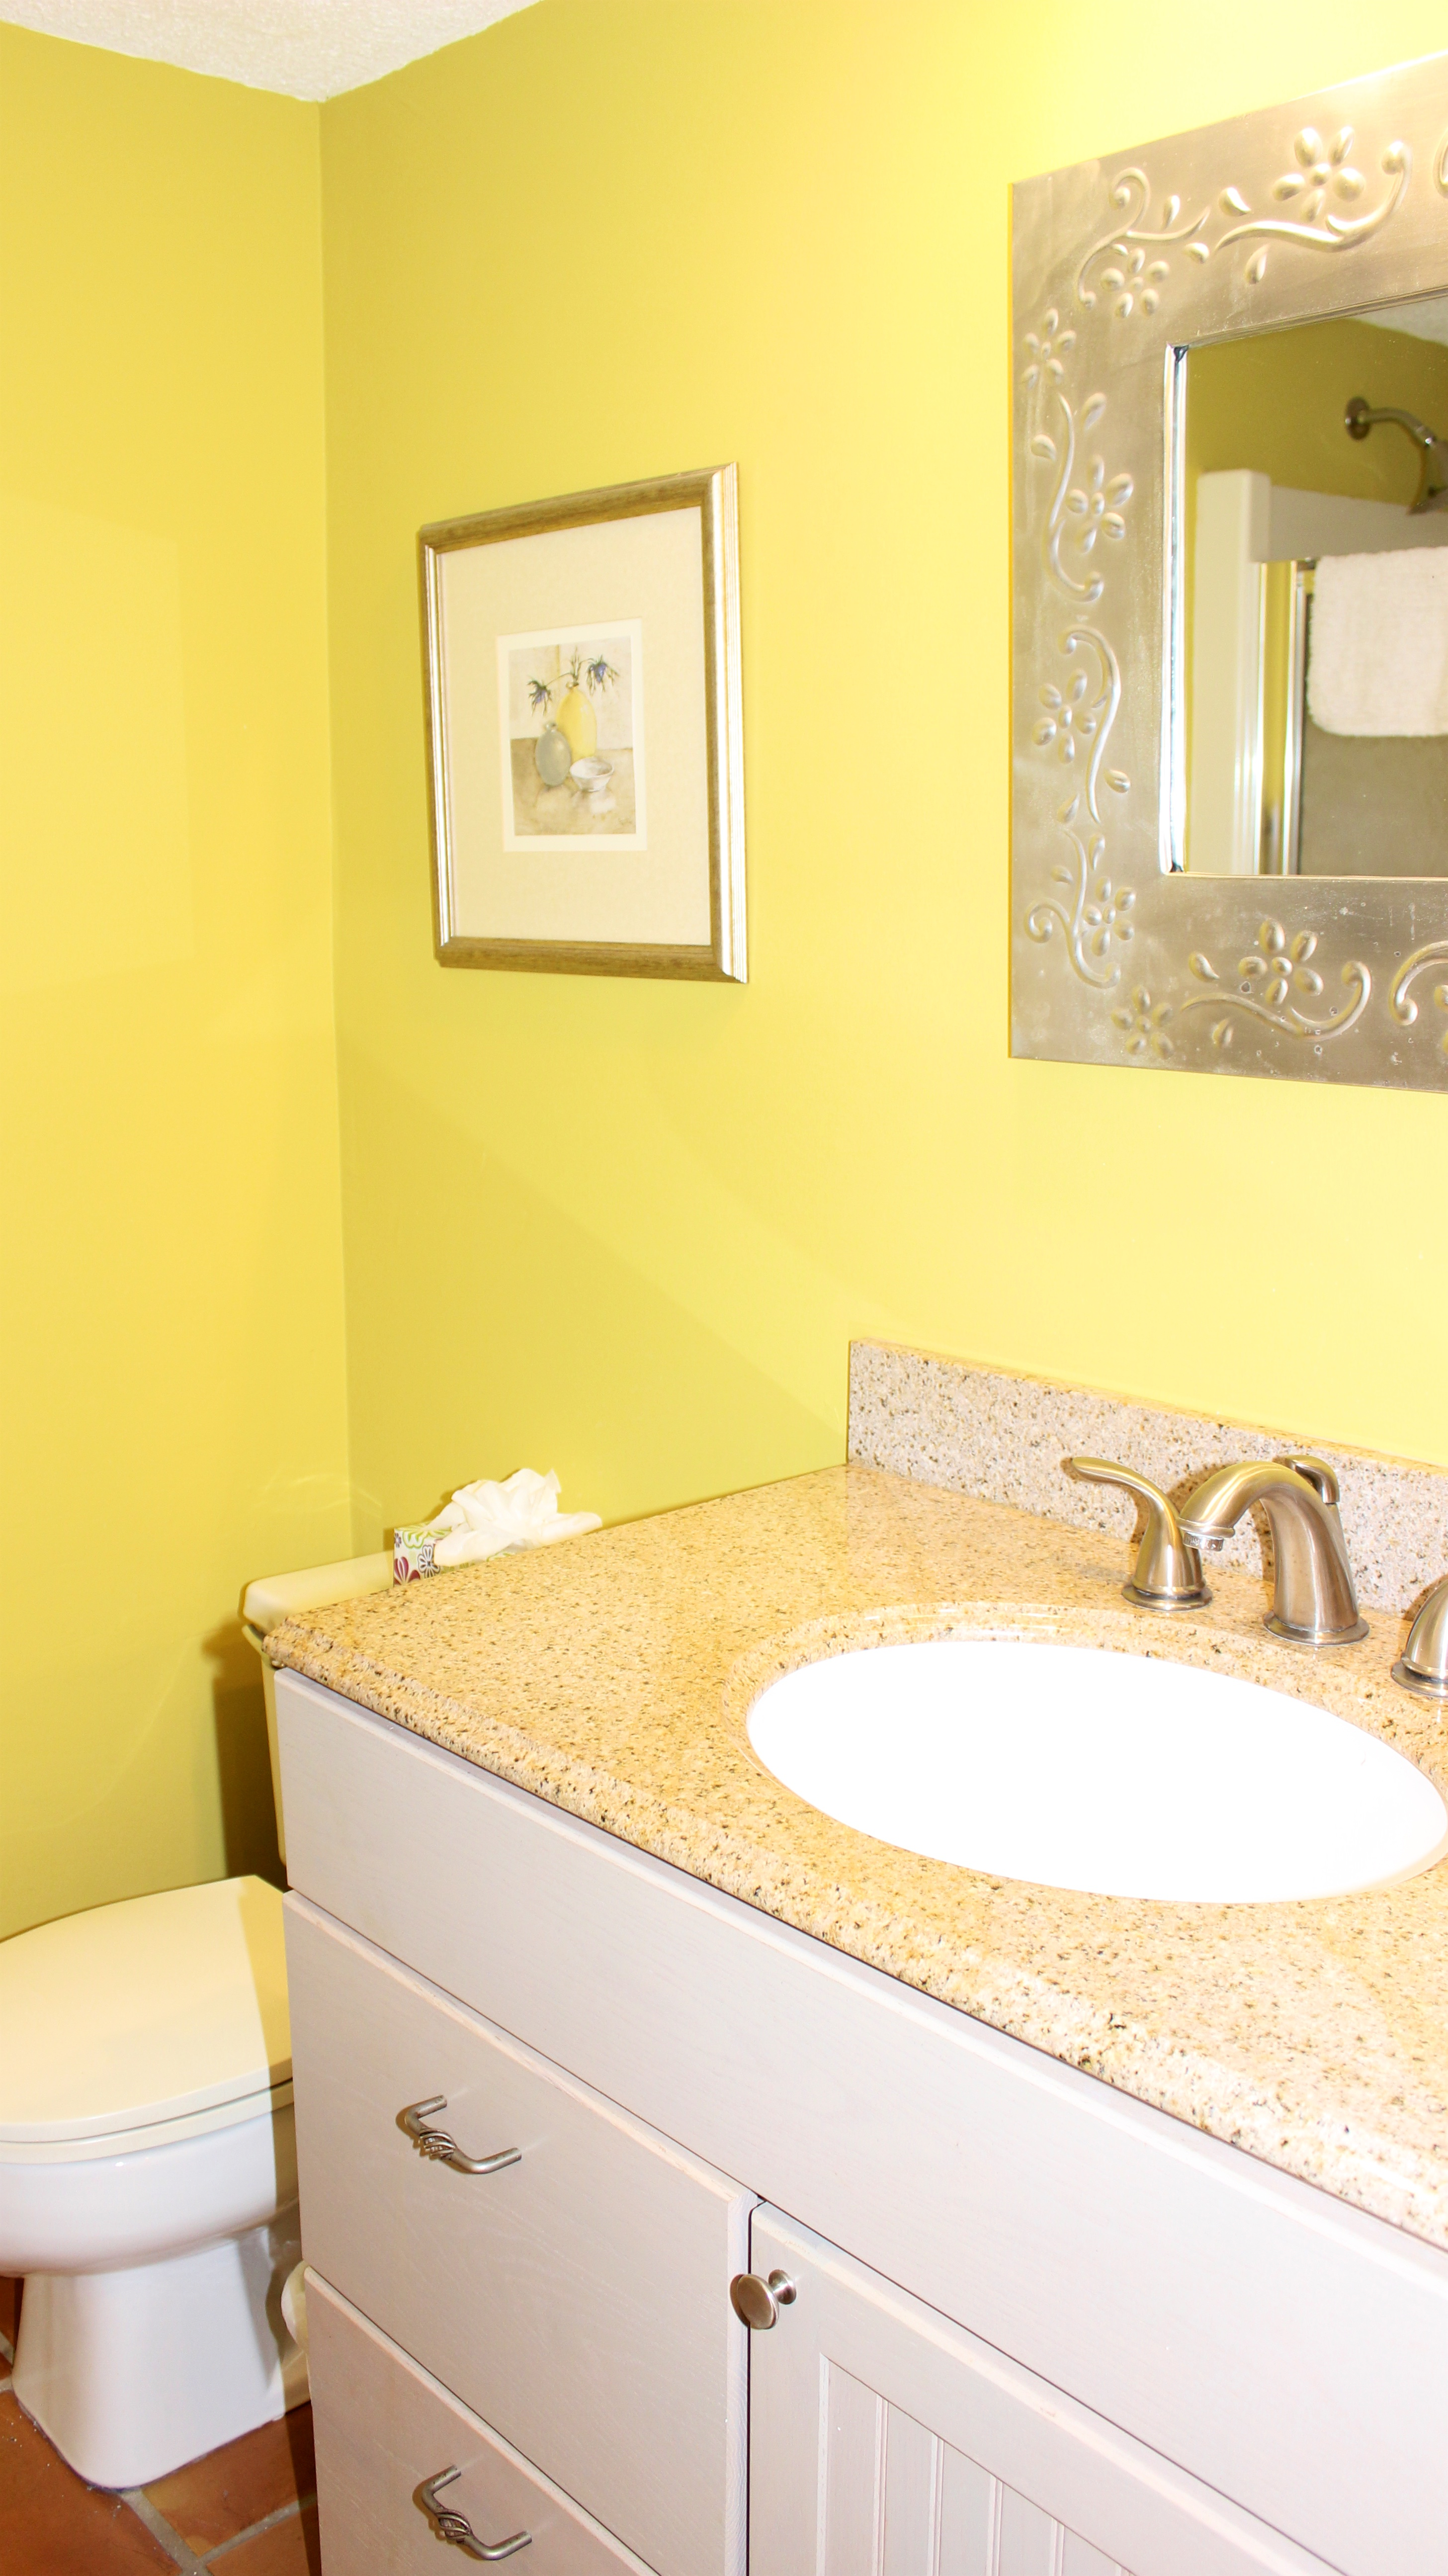 There is a full hall bath with a granite topped vanity.